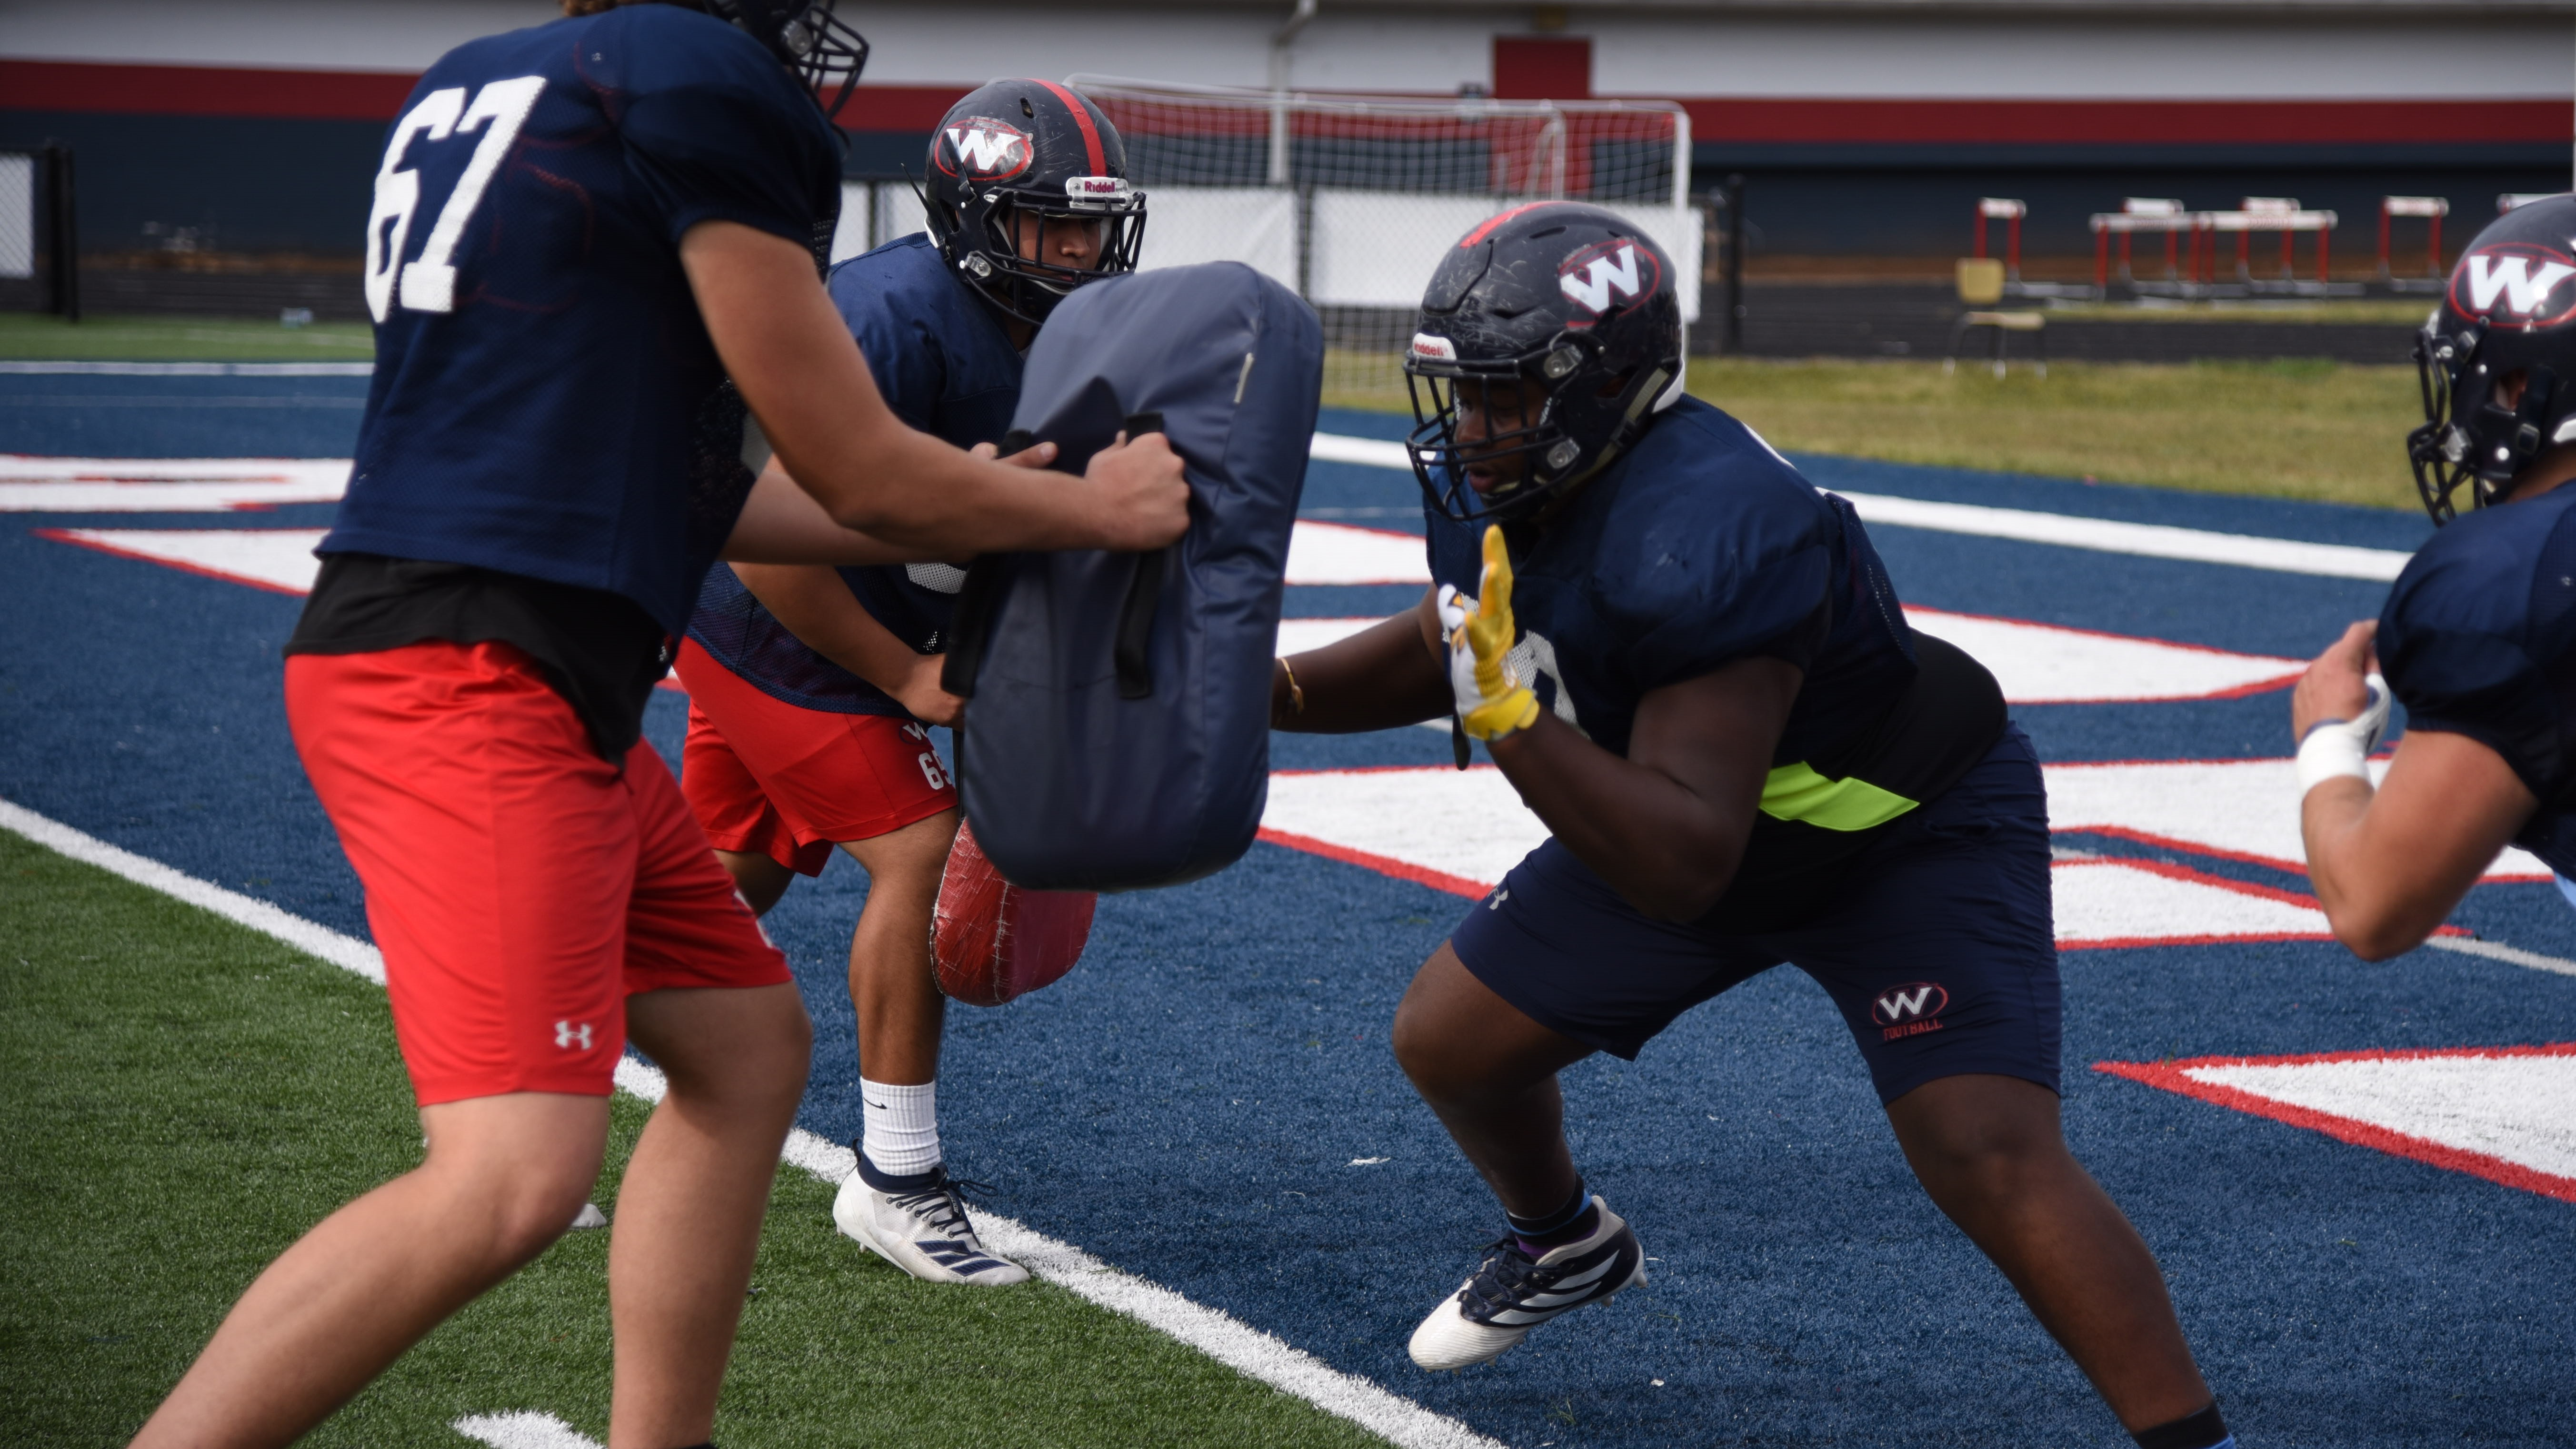 Tyrell Ragland participates in offensive line drills during a practice at West High School on Oct. 15, 2019.